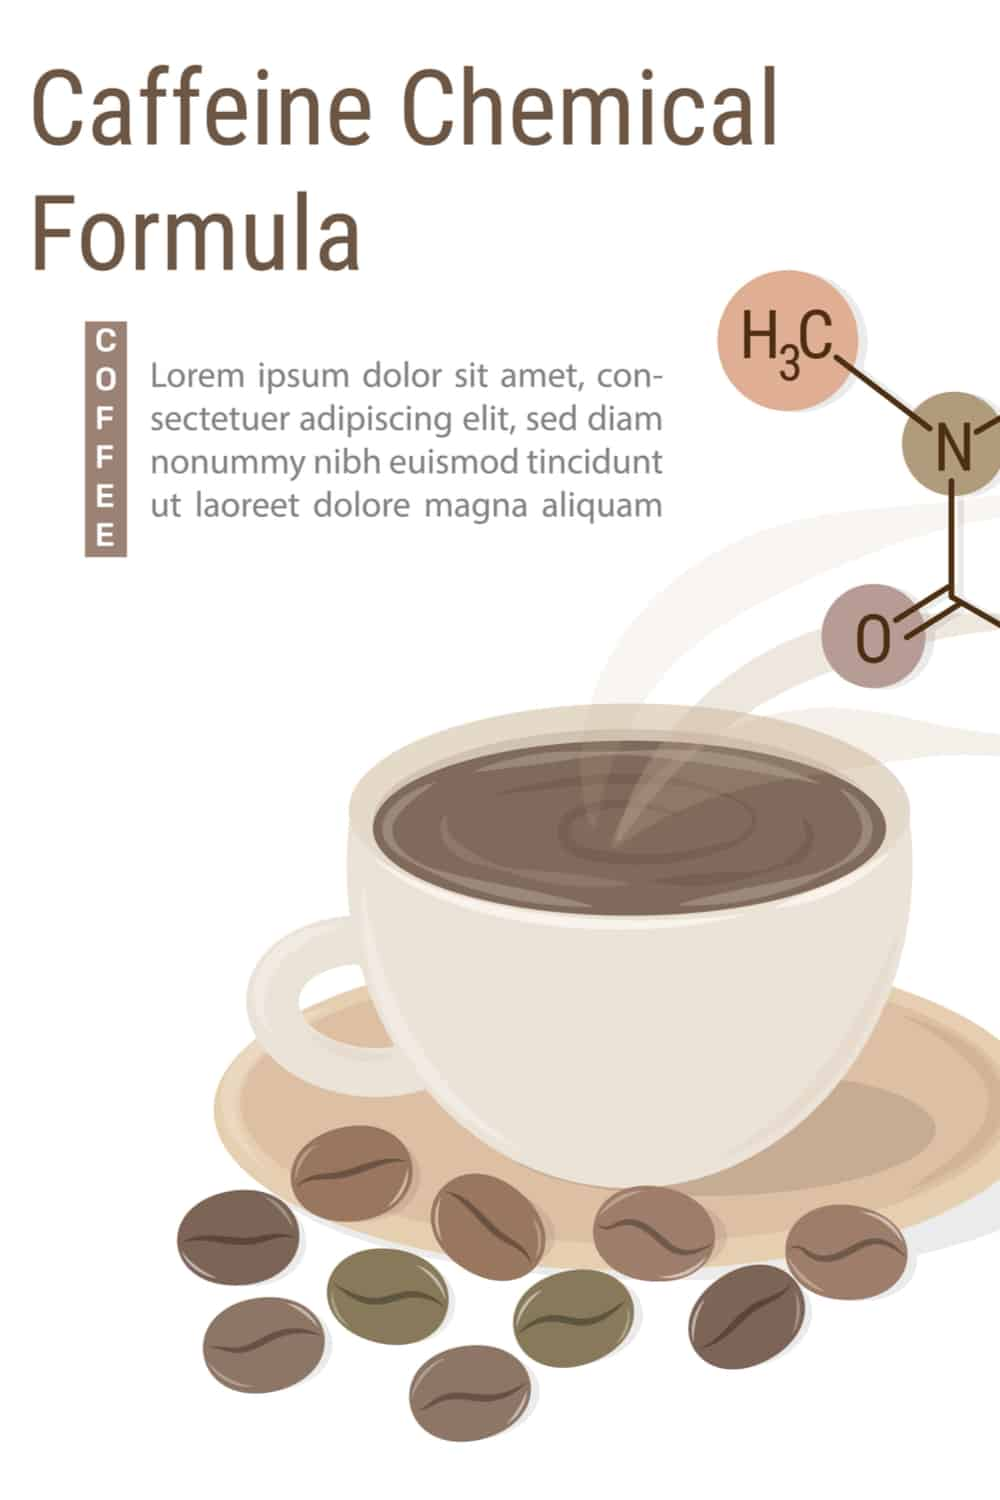 What is caffeine and how does it work